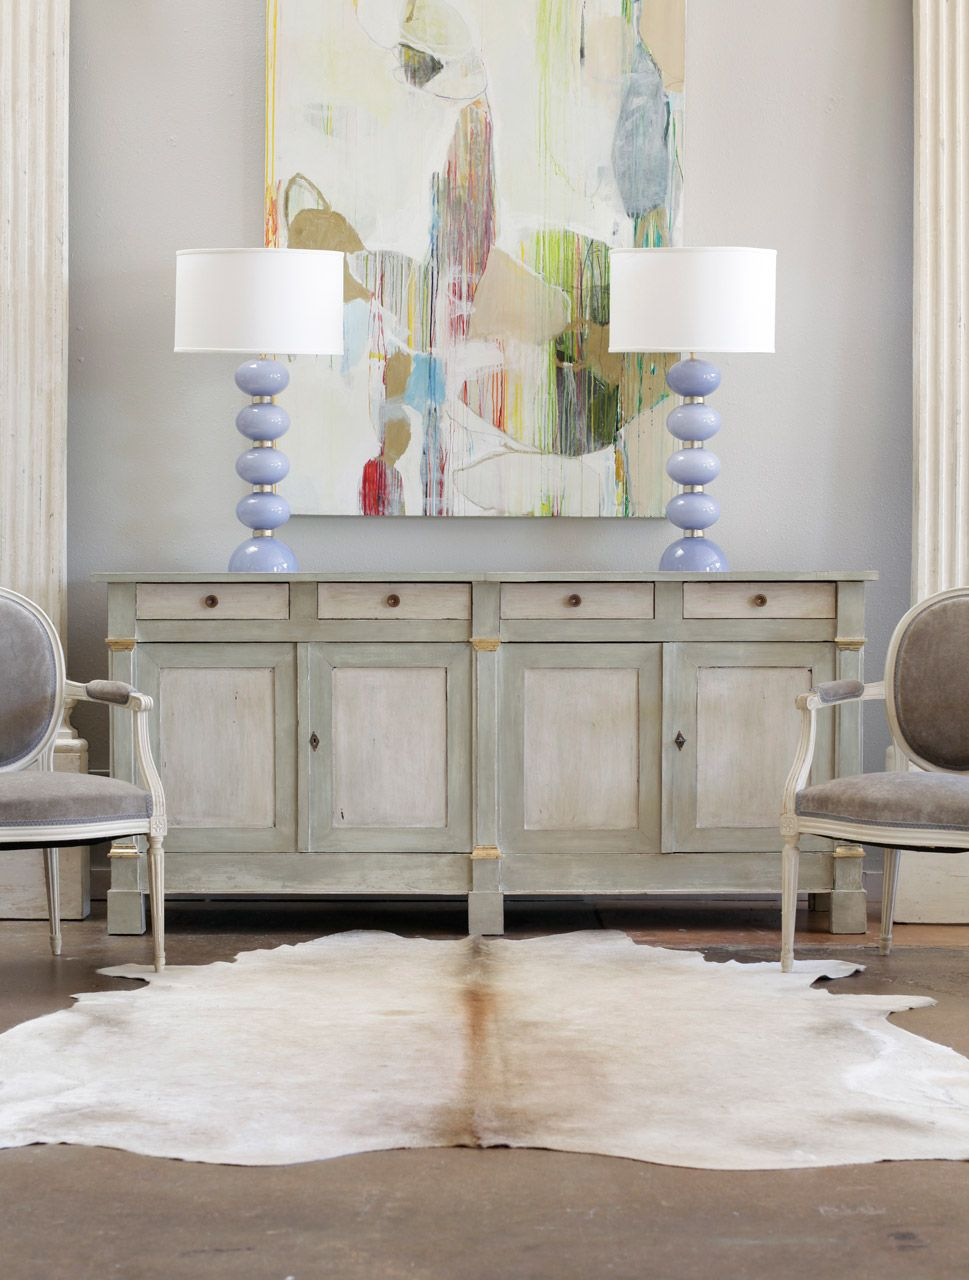 meredith pardue art murano glass lamps antique mint buffet louis xvi armchairs art. Black Bedroom Furniture Sets. Home Design Ideas